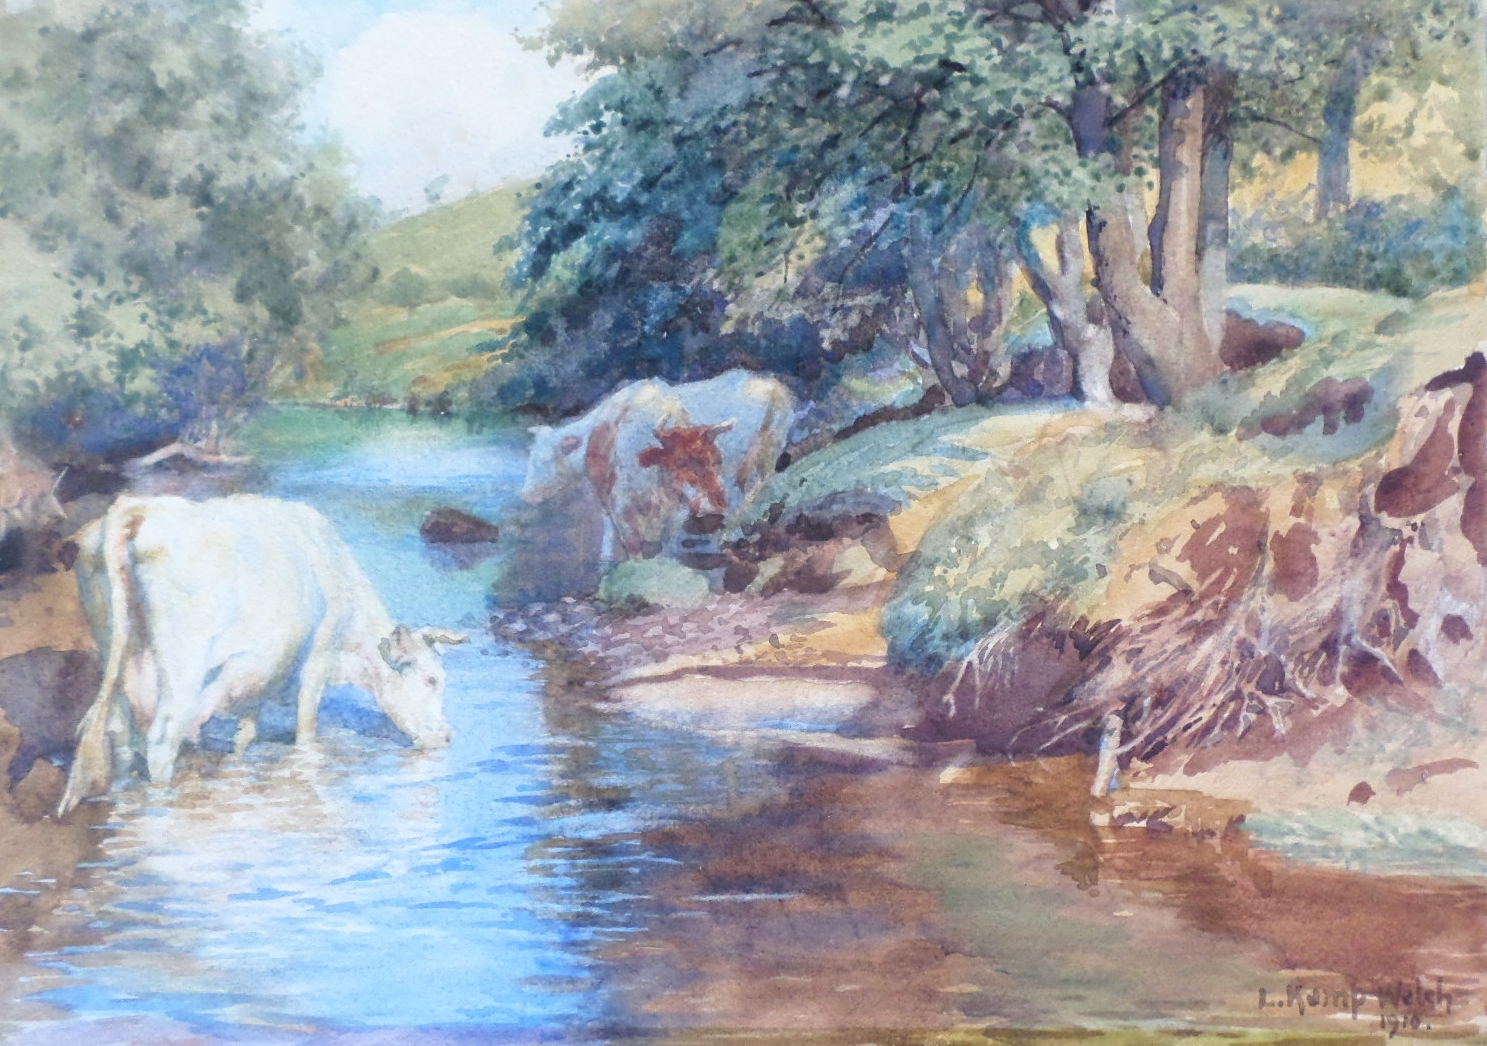 Lucy kemp welch painting